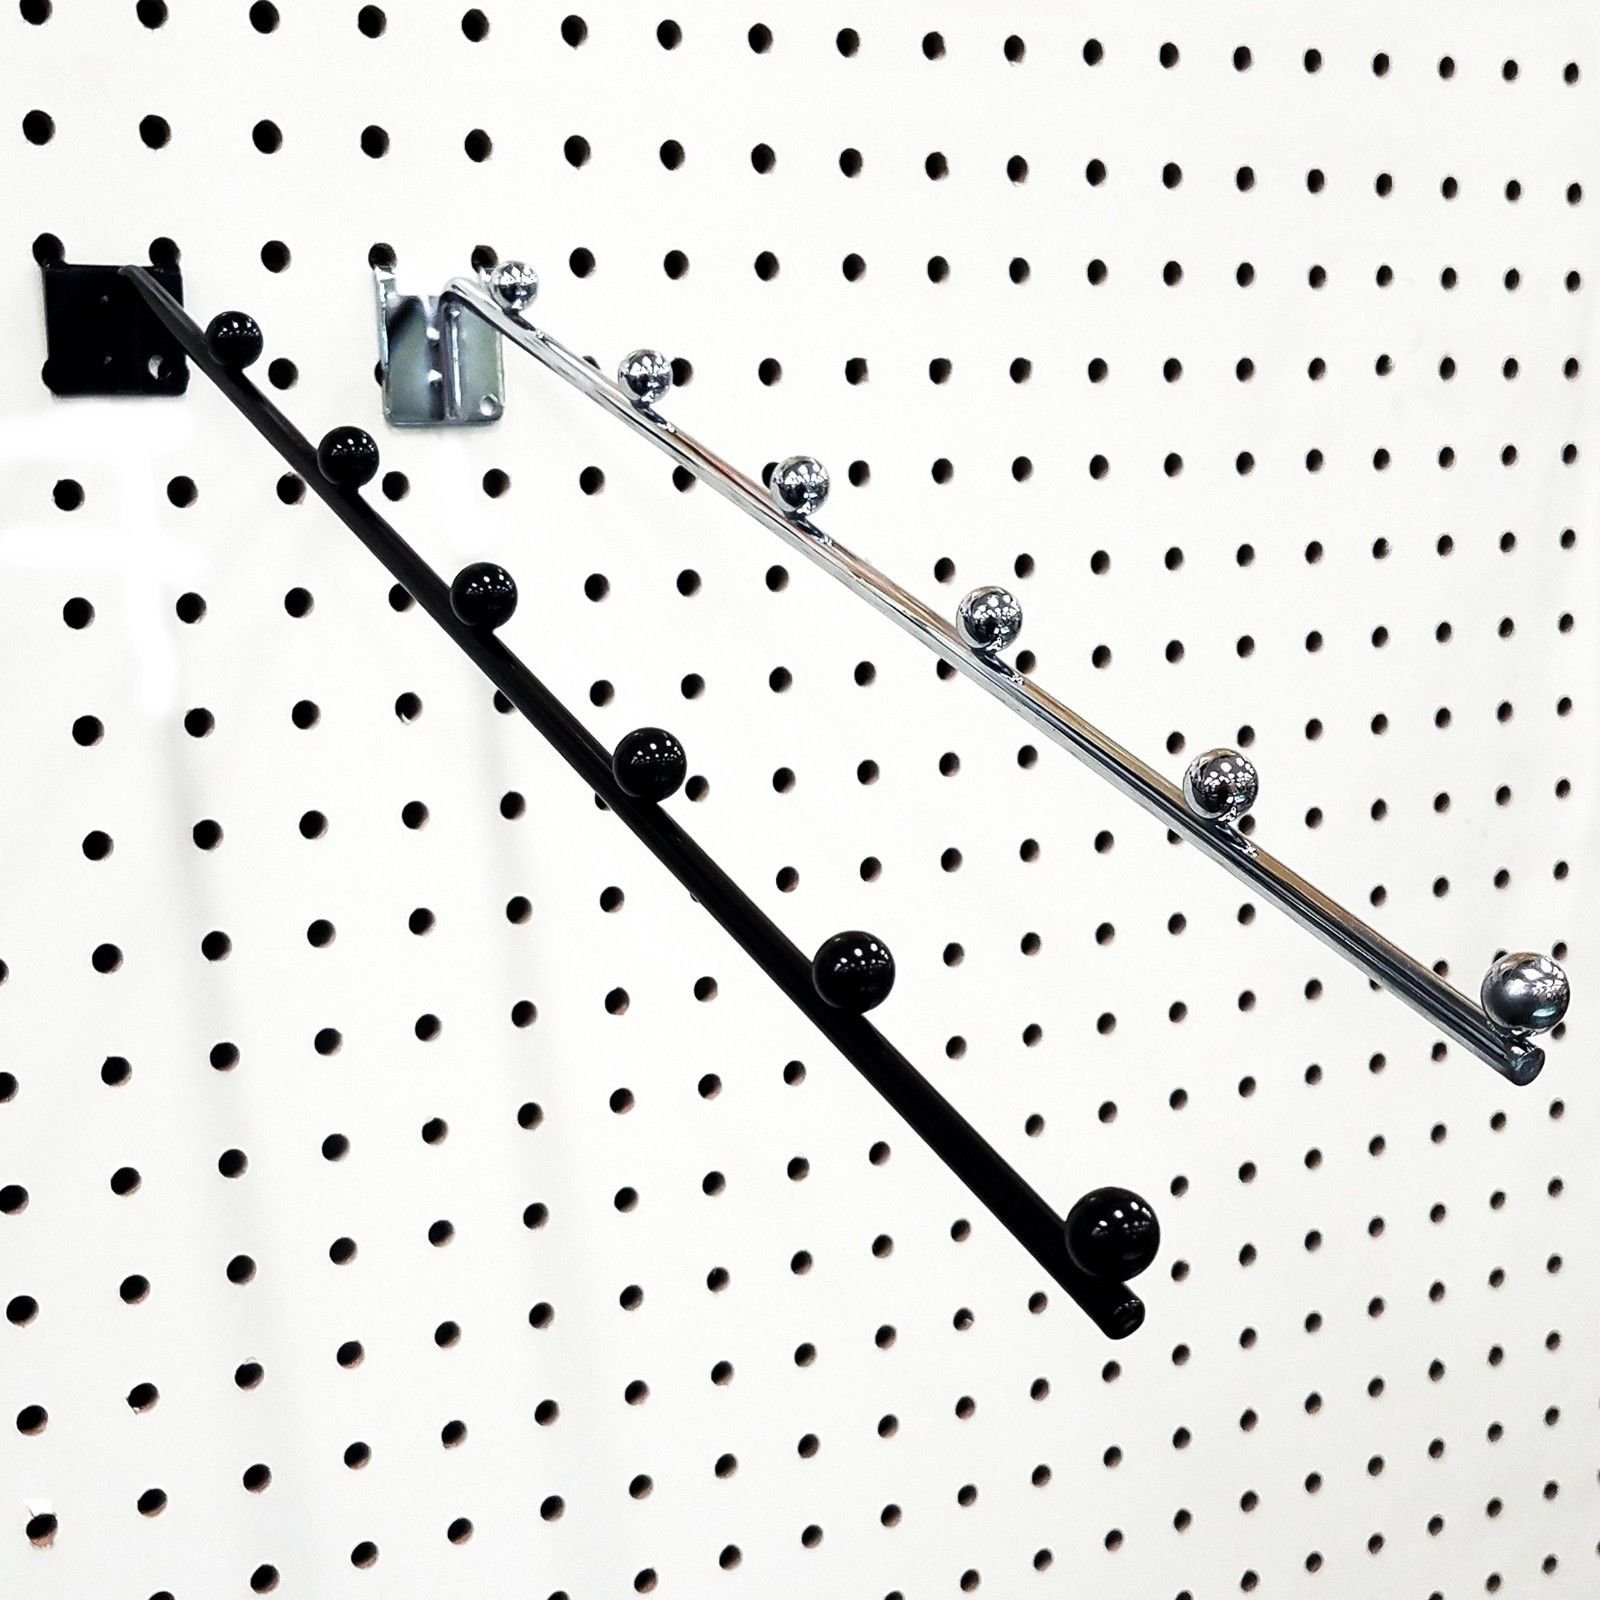 14'' L Pegboard 6 Ball Waterfall Faceout Hook, Black - 25 Pack